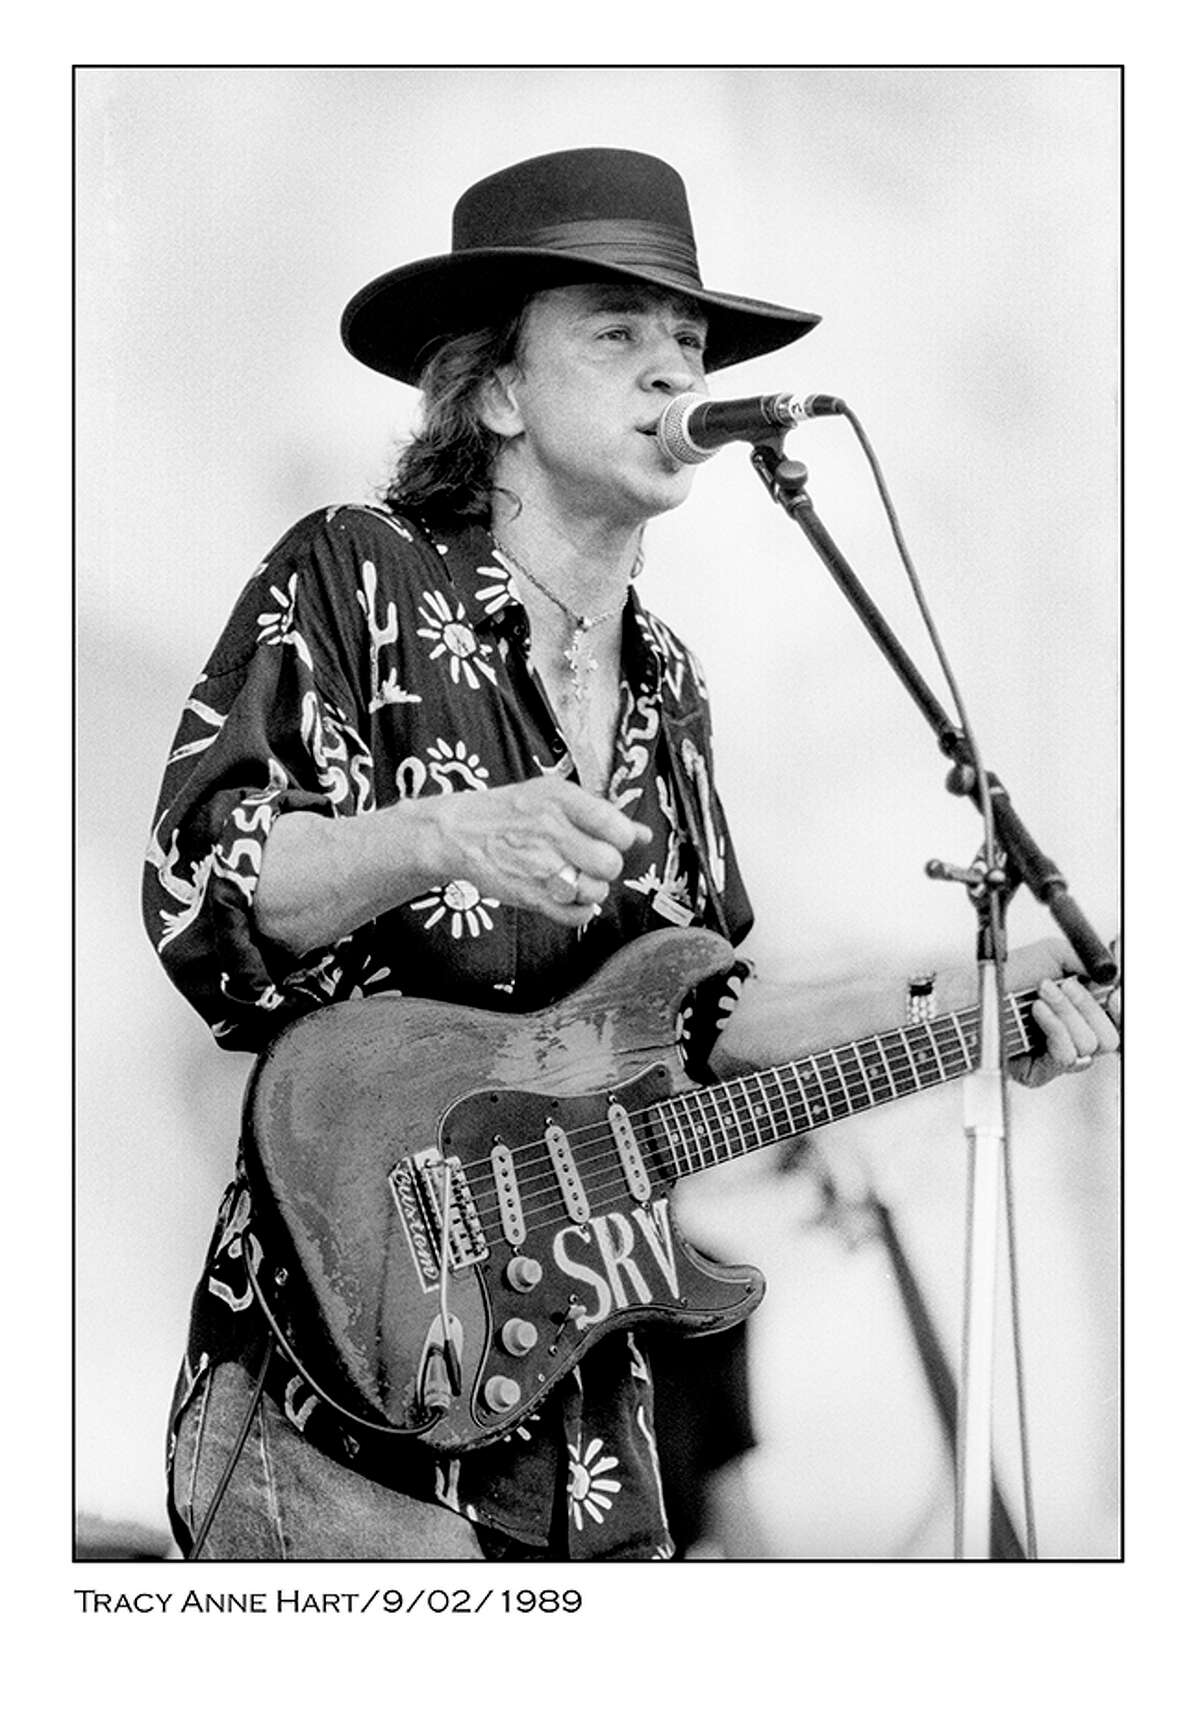 Photo of Stevie Ray Vaughan performing in the 1980s by Houston photographer Tracy Anne Hart.